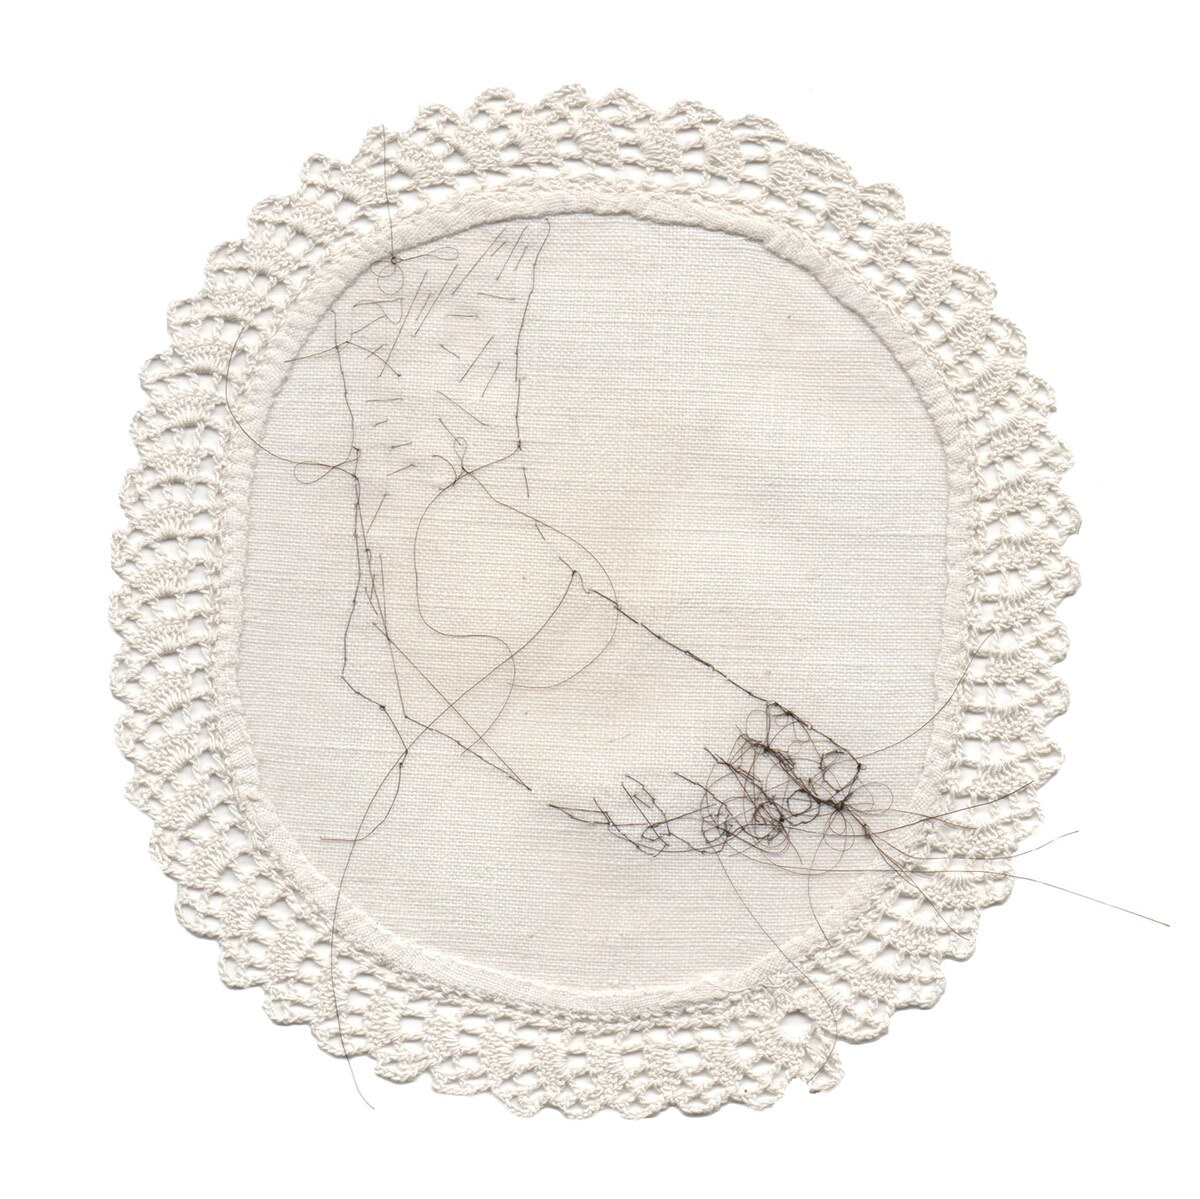 """Untitled,"" 2014 Hair embroidery on fabric 8 x 8 in. Part of ""Sula Bermúdez-Silverman: Neither Fish, Flesh, nor Fowl"" at CAAM. 